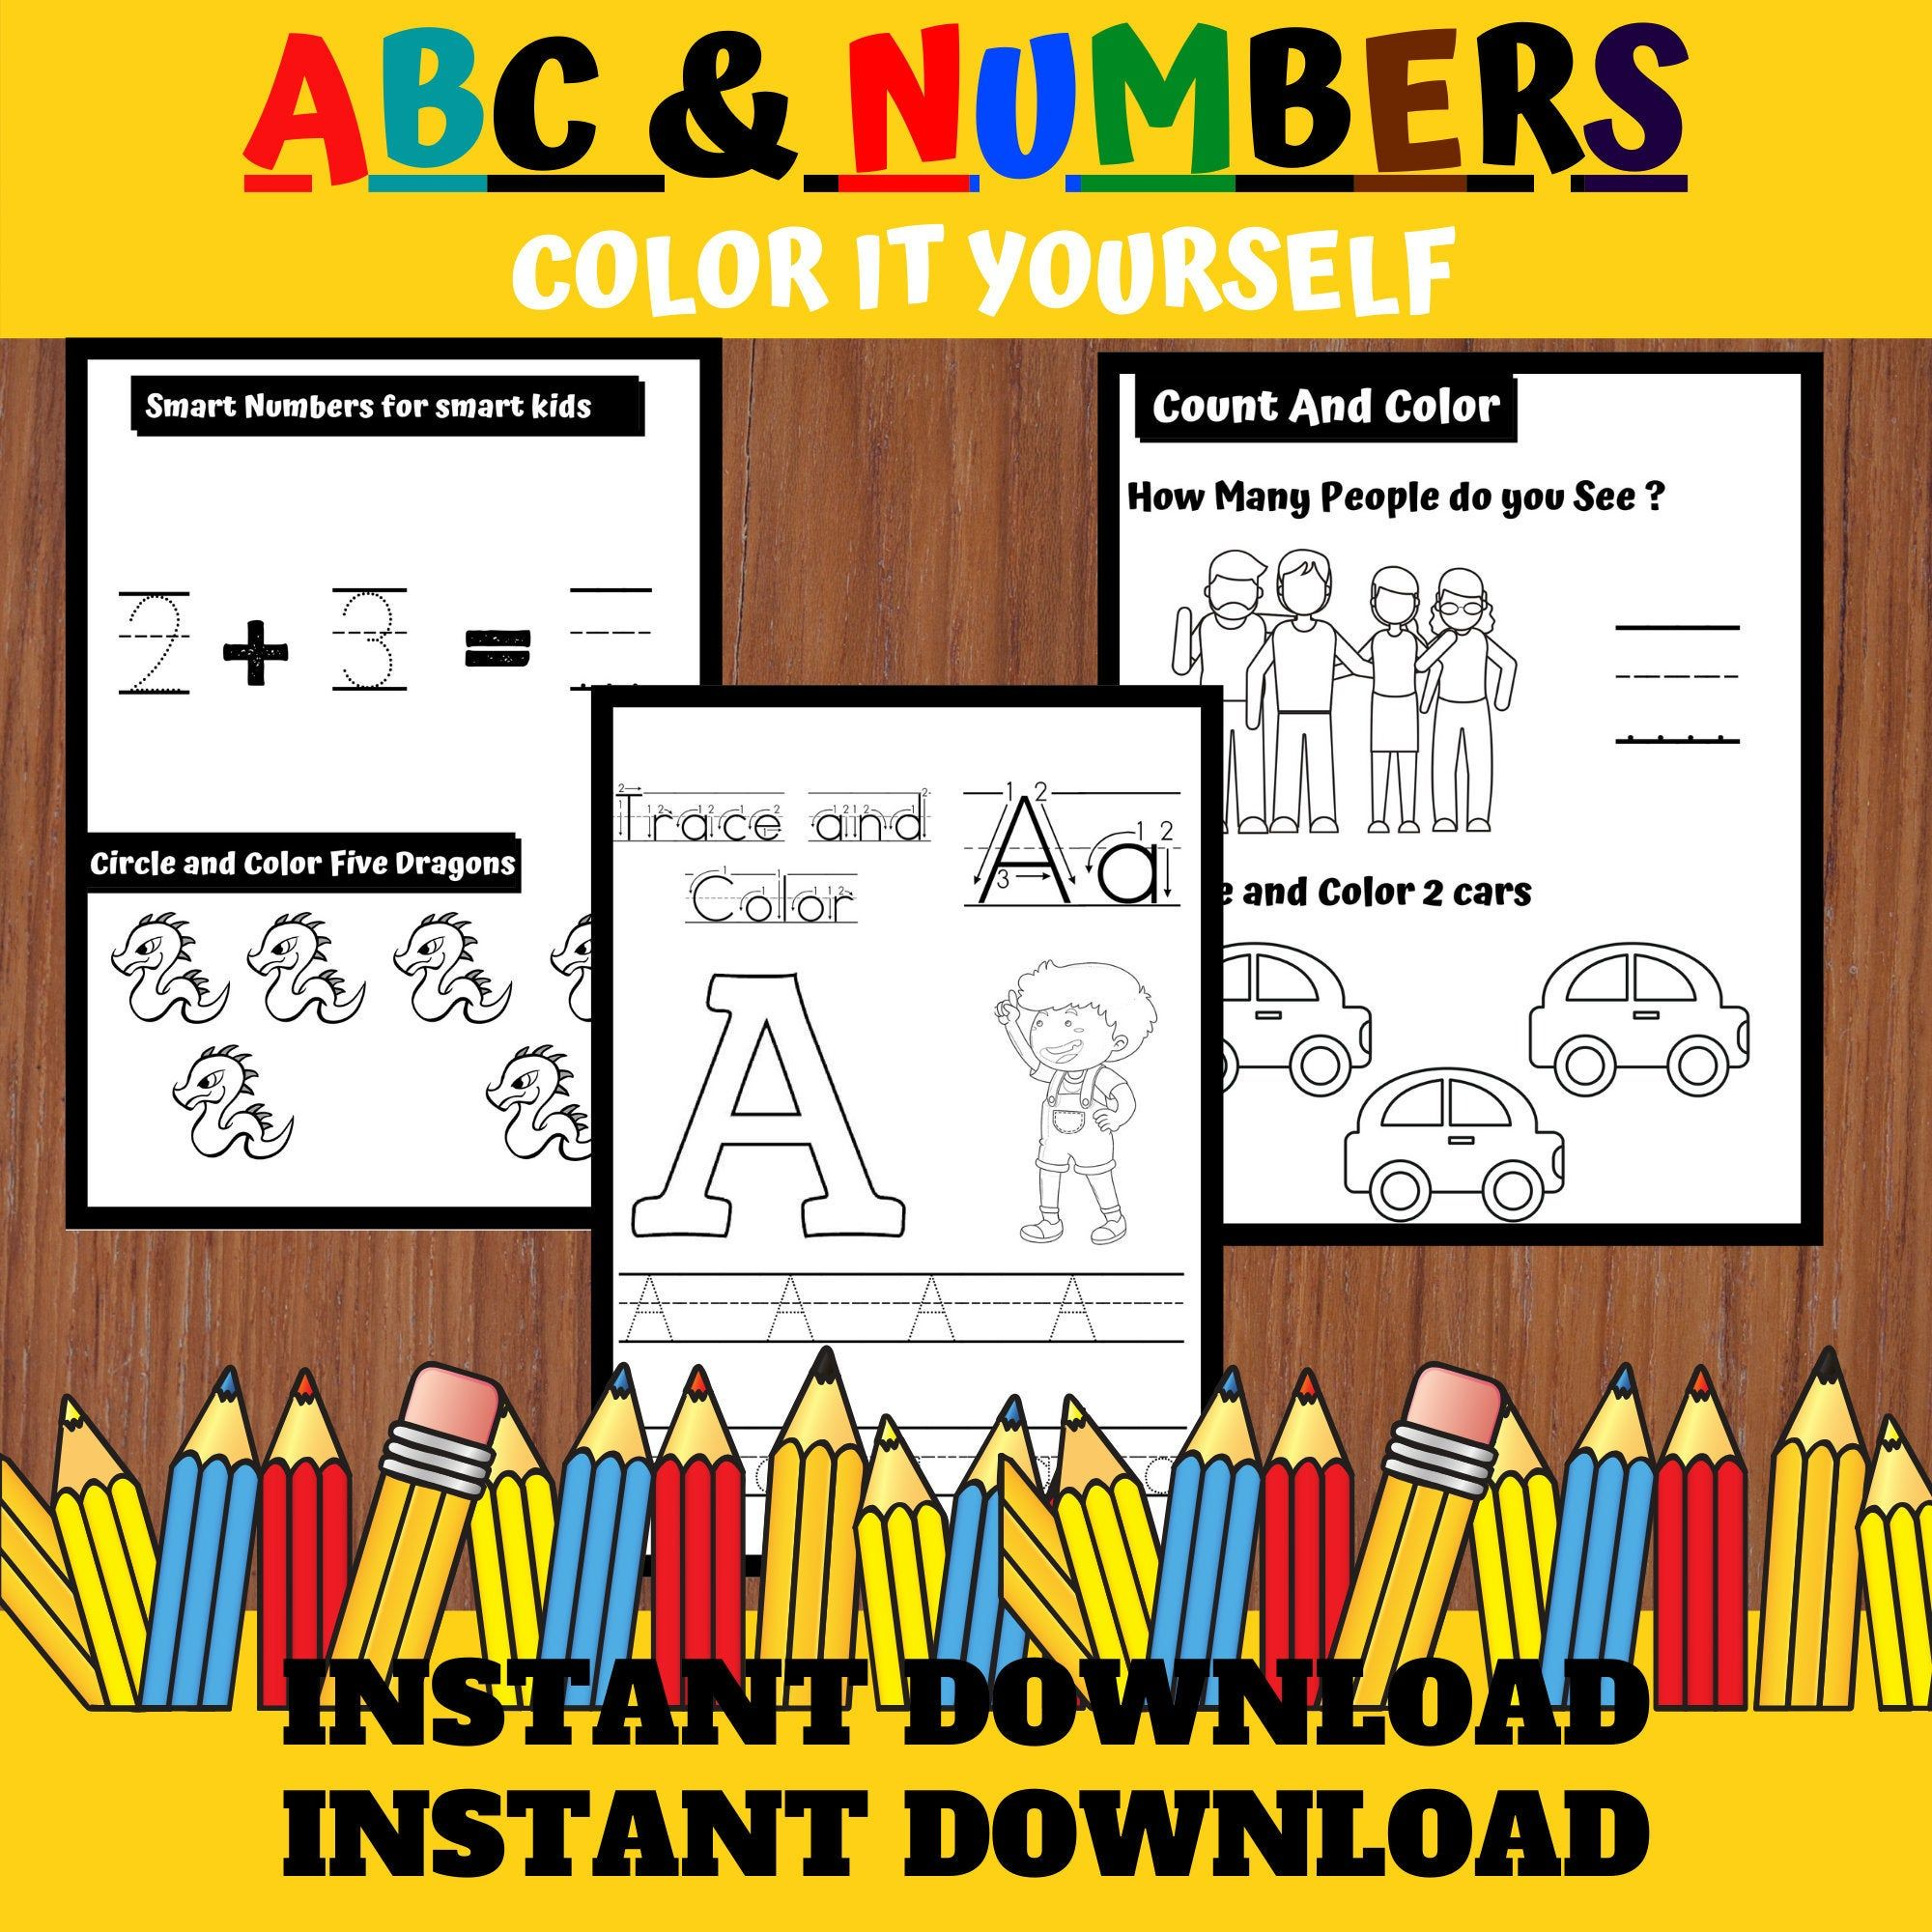 Pin On Abc And Numbers